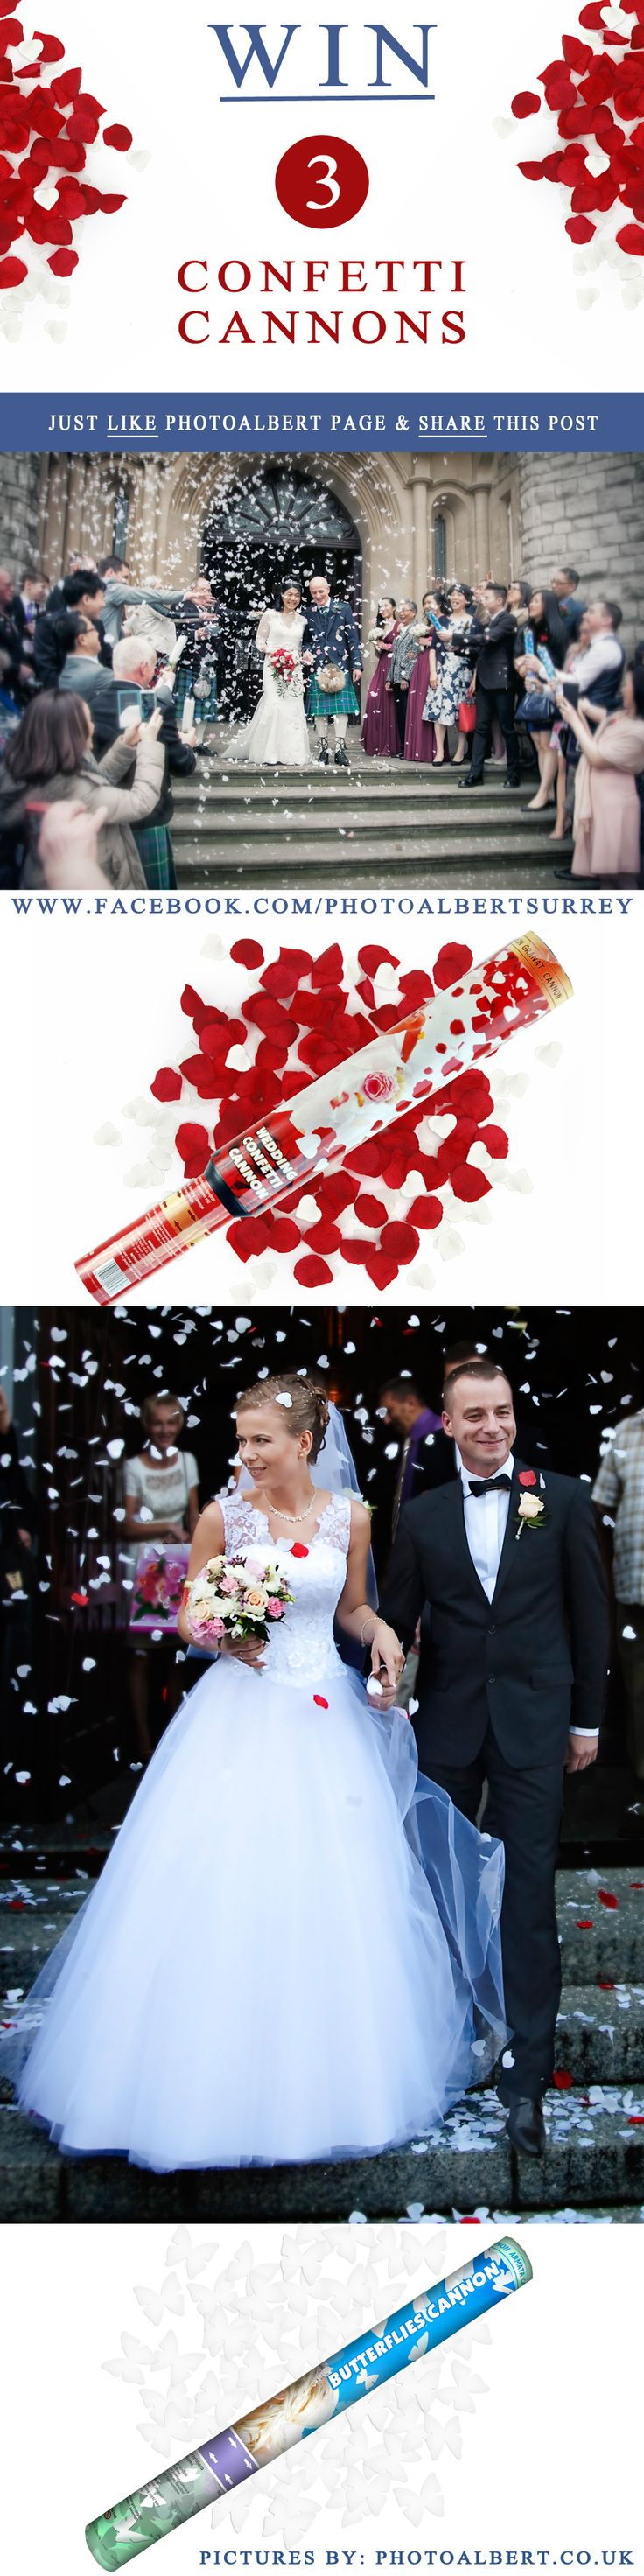 #Competition time !! We've teamed up with PhotoAlbert to bring you this fantastic opportunity to win one of 2 sets of Confetti Cannons (each set contains 3 cannons). TO ENTER: SIMPLY LIKE PhotoAlbert's FB PAGE AND SHARE THIS POST The competition closes 8th May 2016 at midnight. Good luck ! www.facebook.com/photoalbertsurrey #competition #wedding #confetti #bride #wedding_photographer #wedding_photographer_surrey